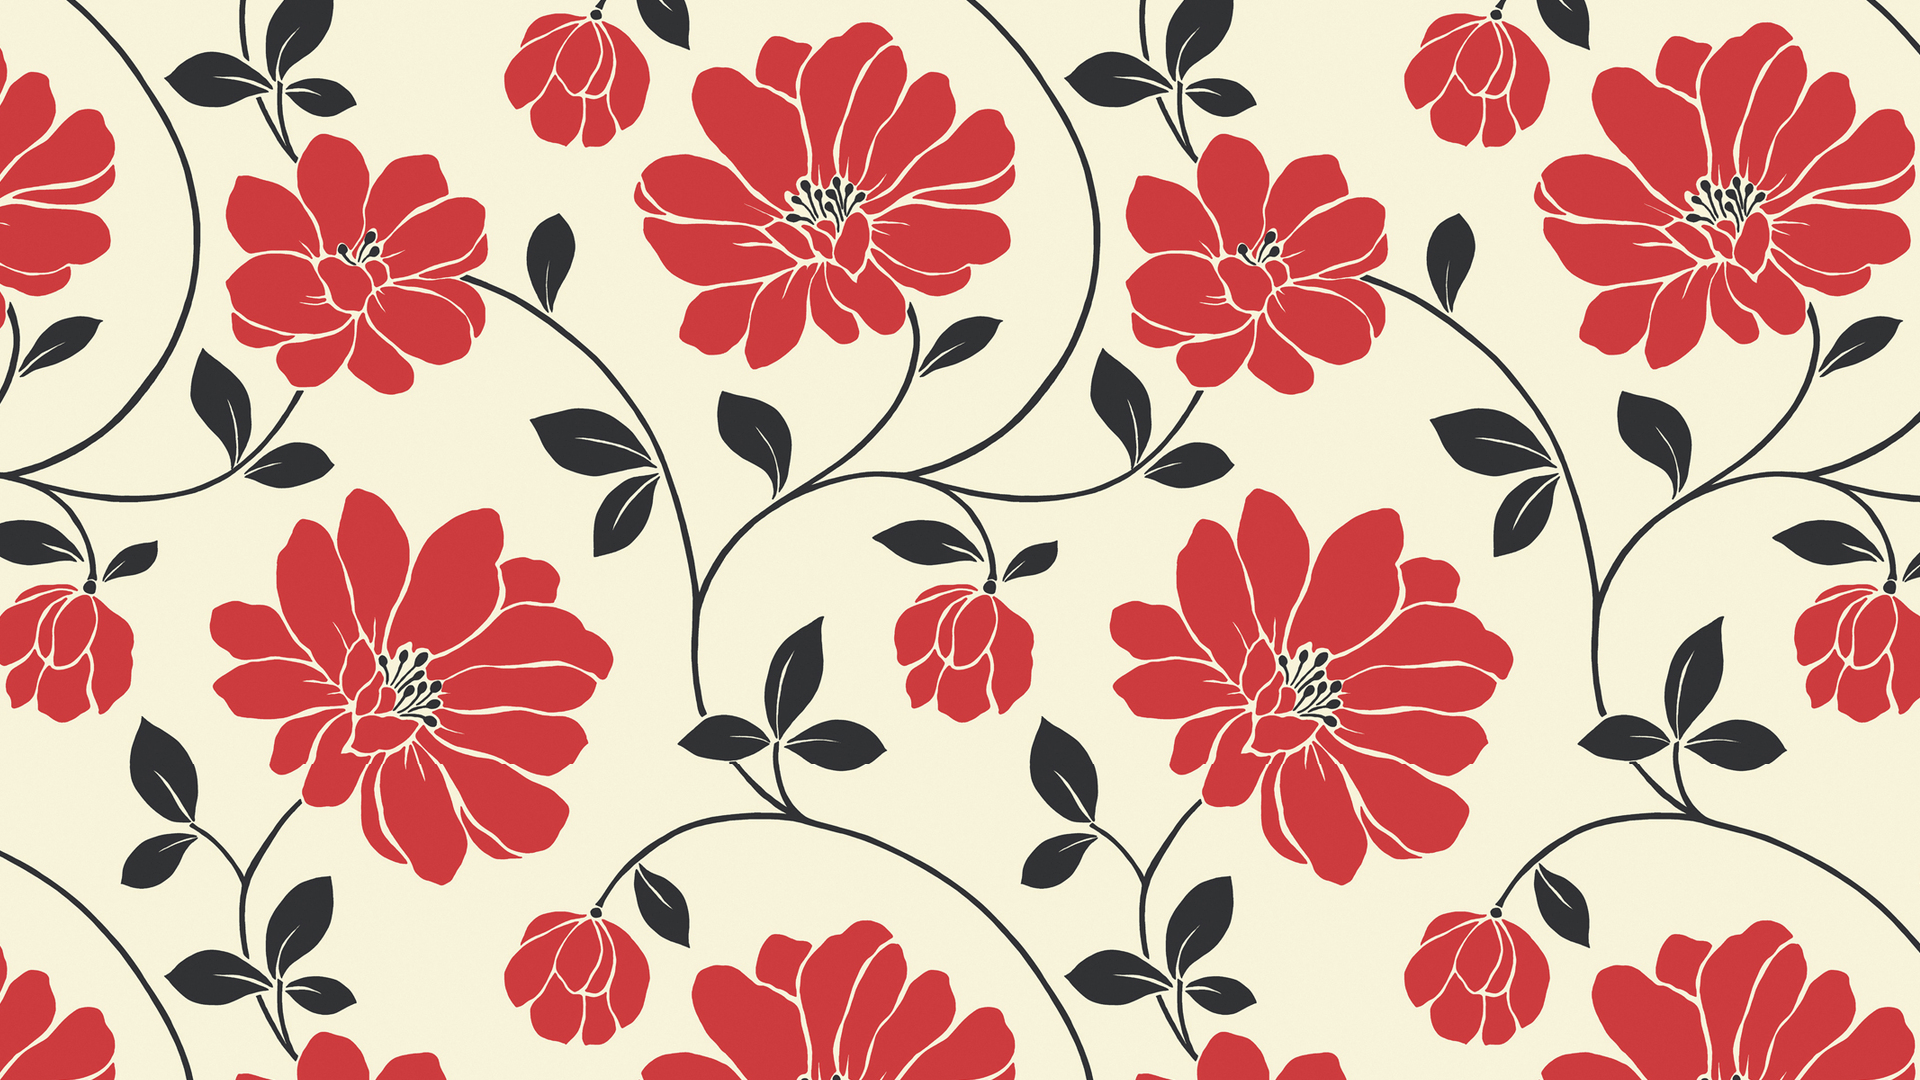 Flower Pattern Wallpaper Interesting Inspiration Ideas